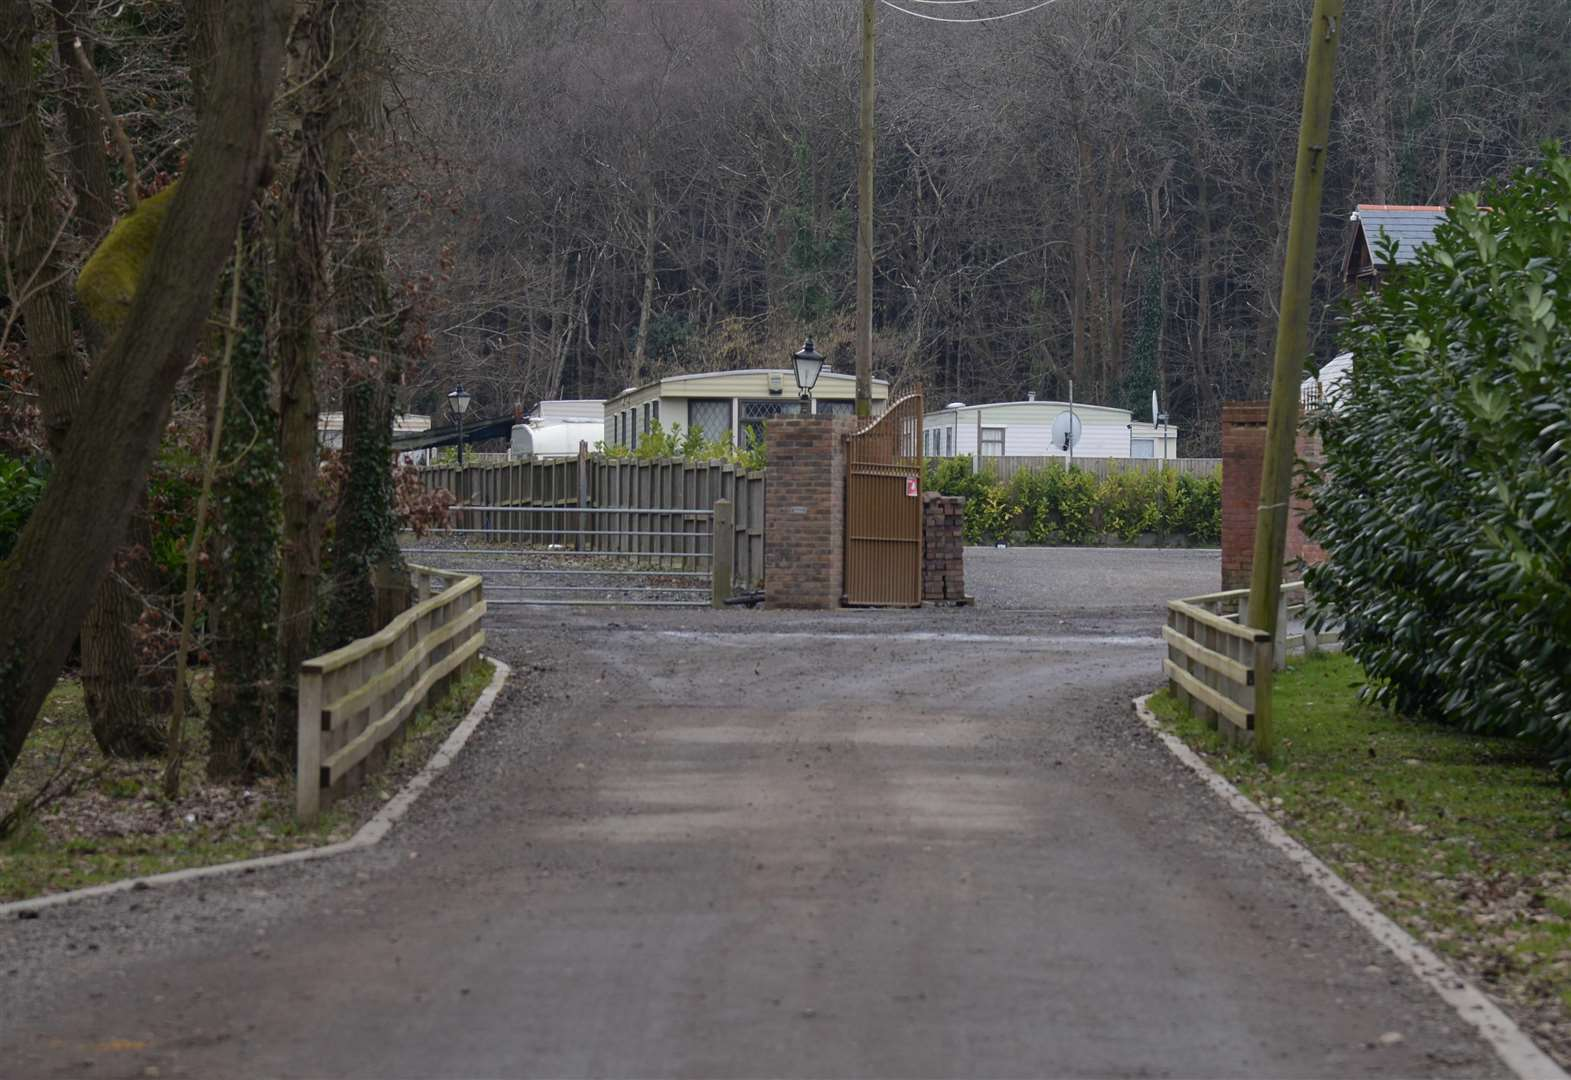 Plan to expand traveller site approved